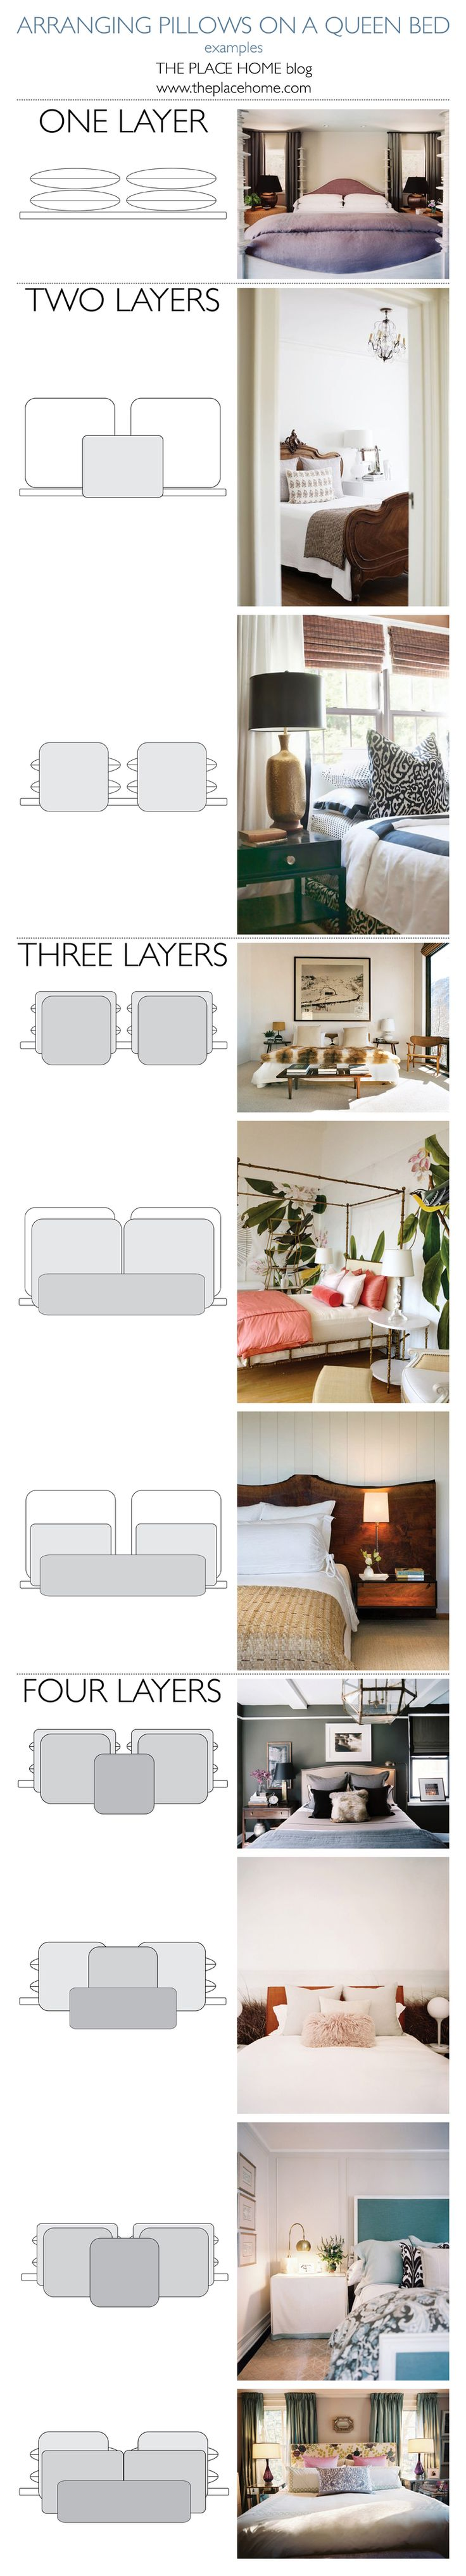 arranging bed pillows (examples) | THE PLACE HOME